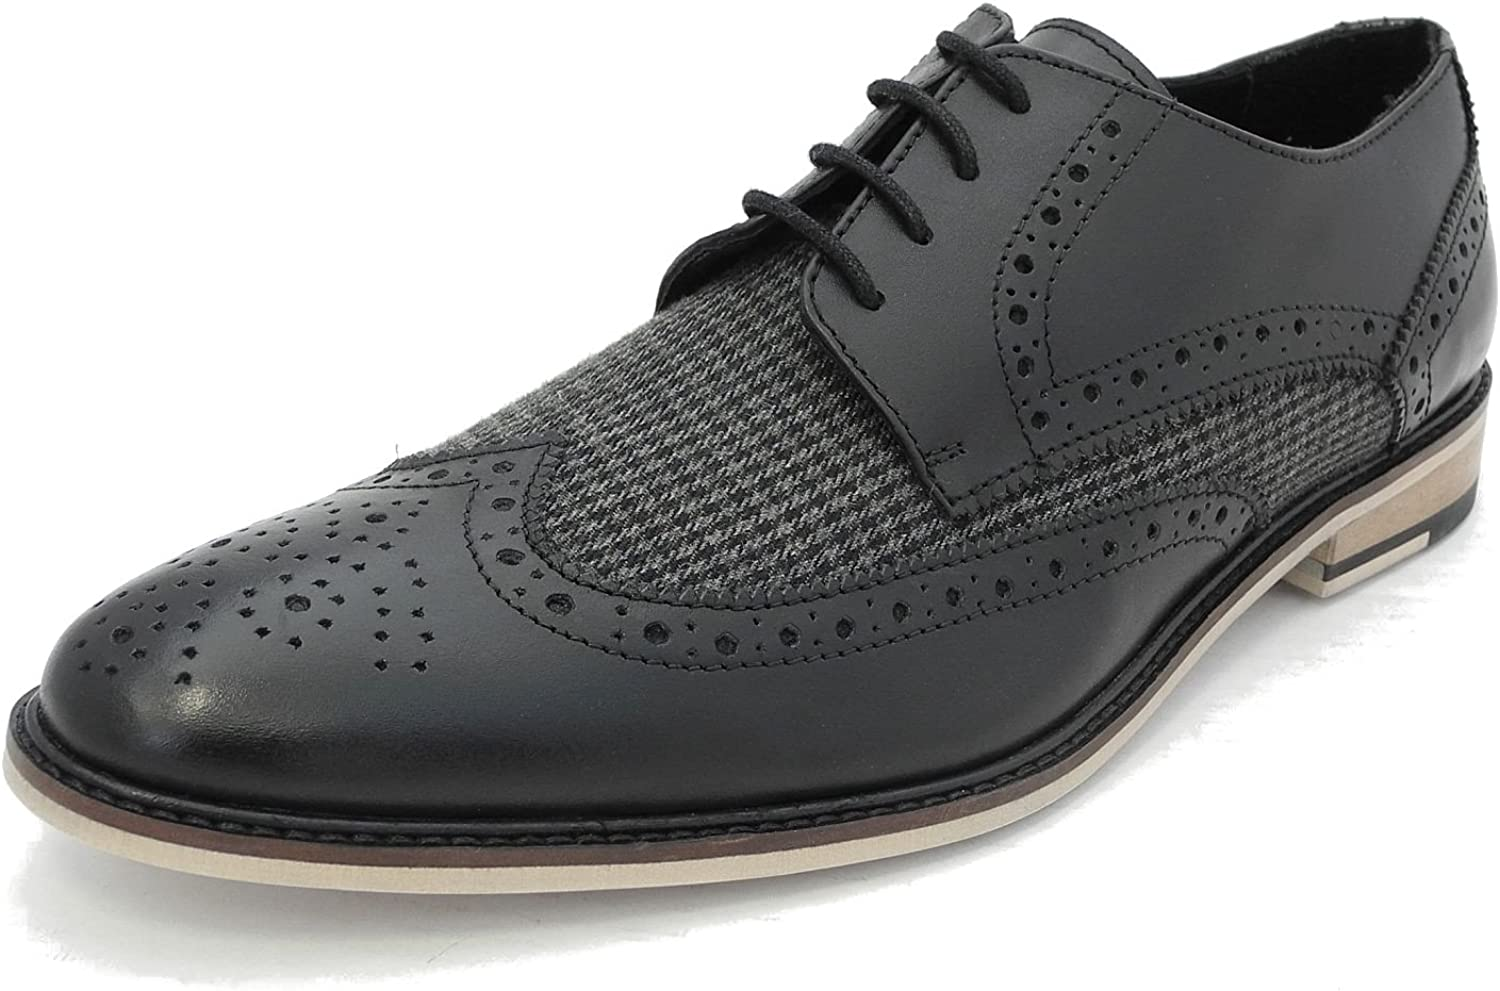 Mens Black Grey Check Real Leather Lace Up Smart Brogues Gatsby Spats shoes Size 6 7 8 9 10 11 12